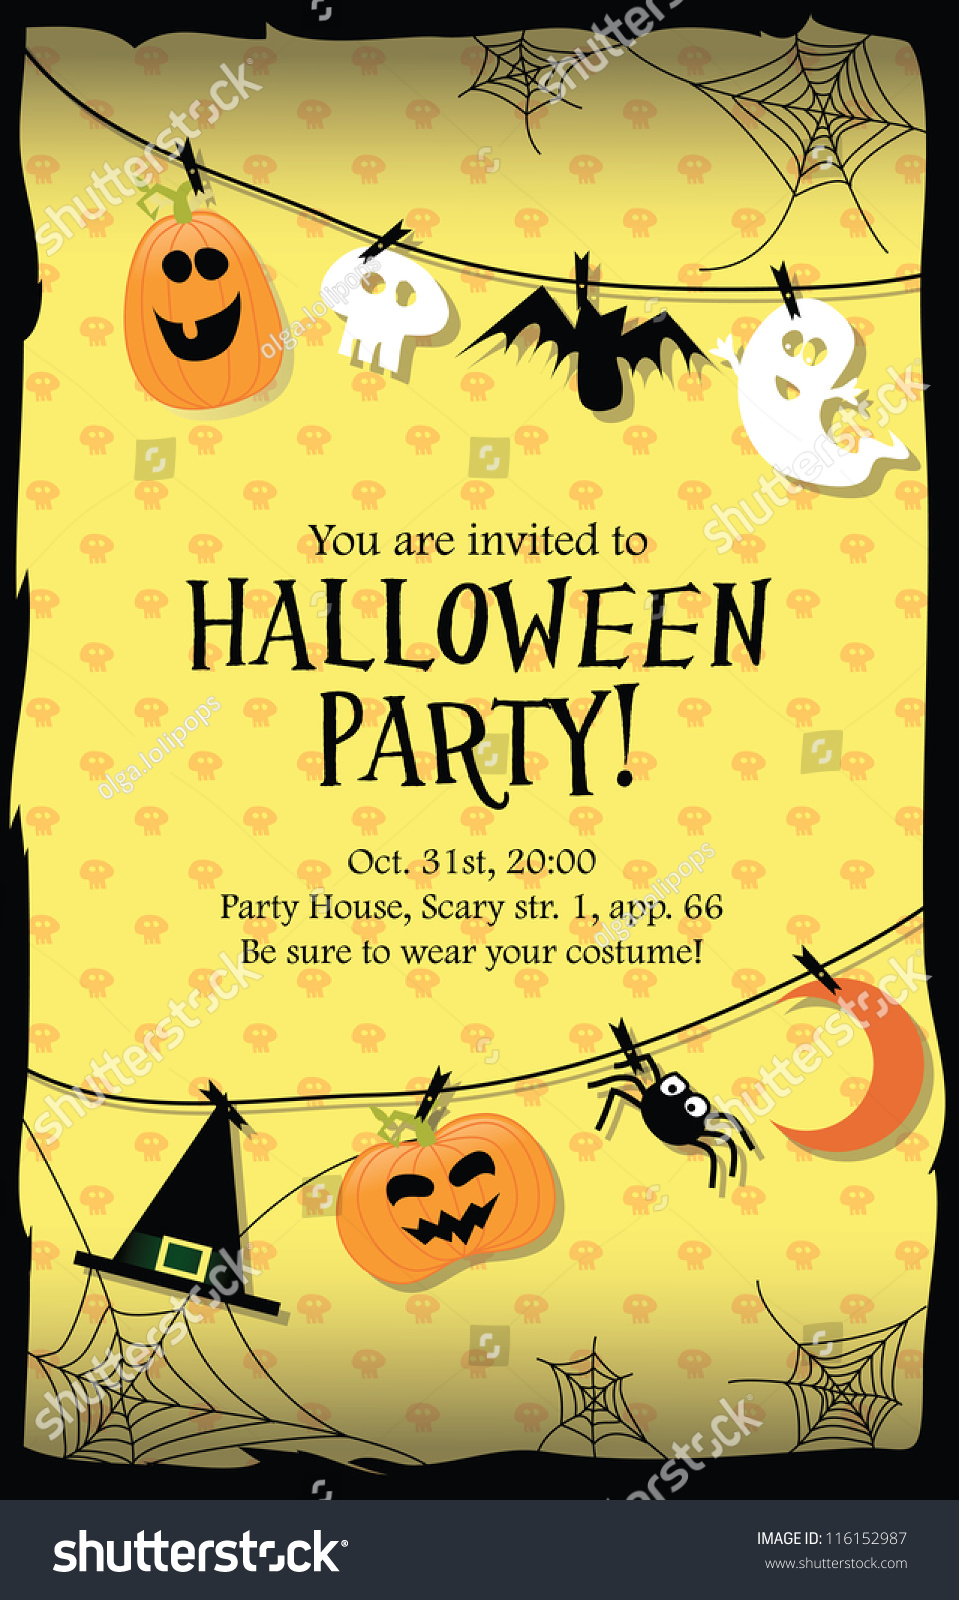 Halloween Party Invitation Card Vector 116152987 Shutterstock – Scary or Horror Invitation Cards